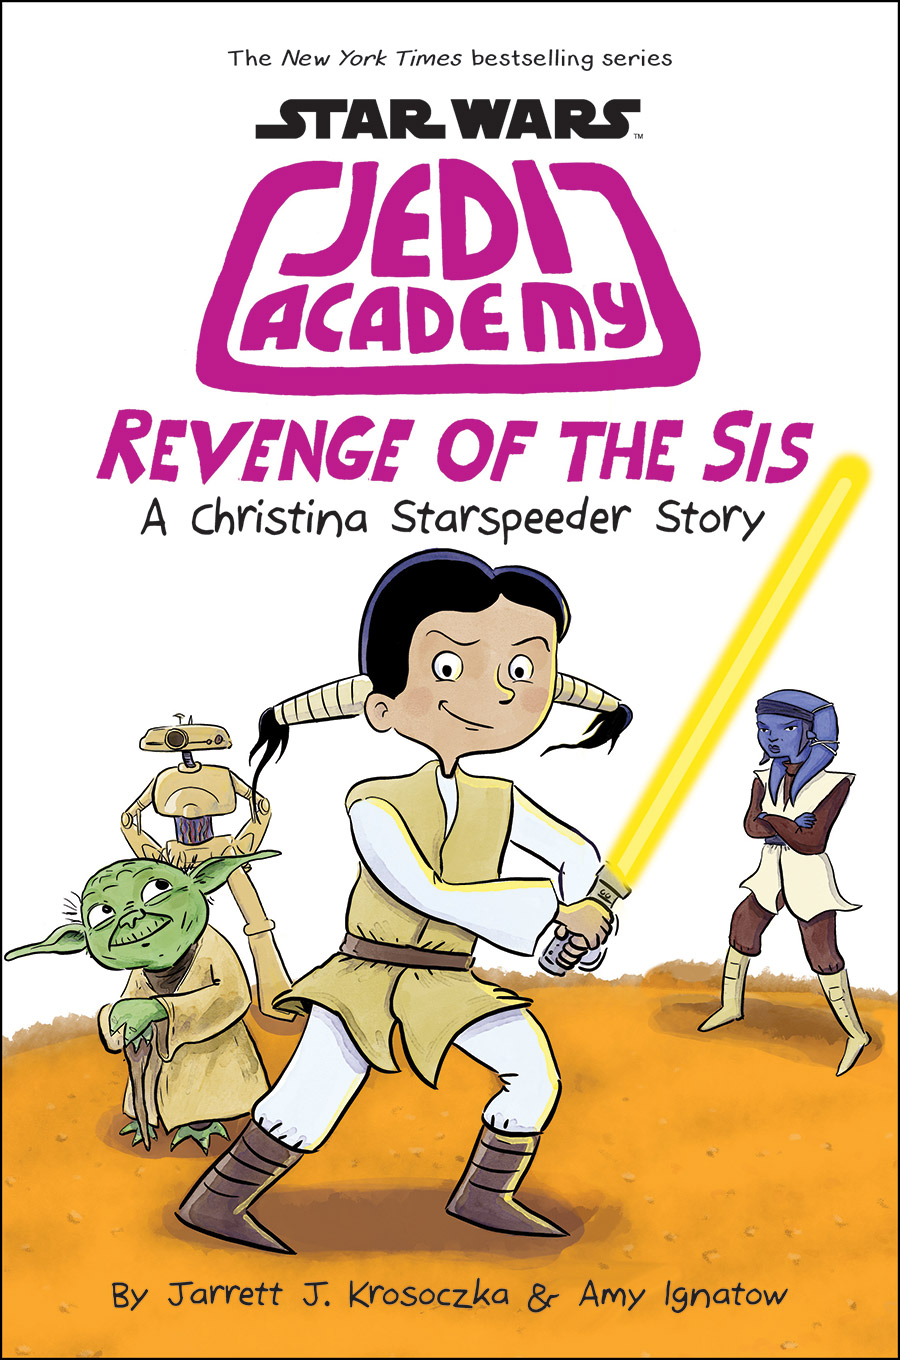 The cover art for Jedi Academy: Revenge of the Sis.